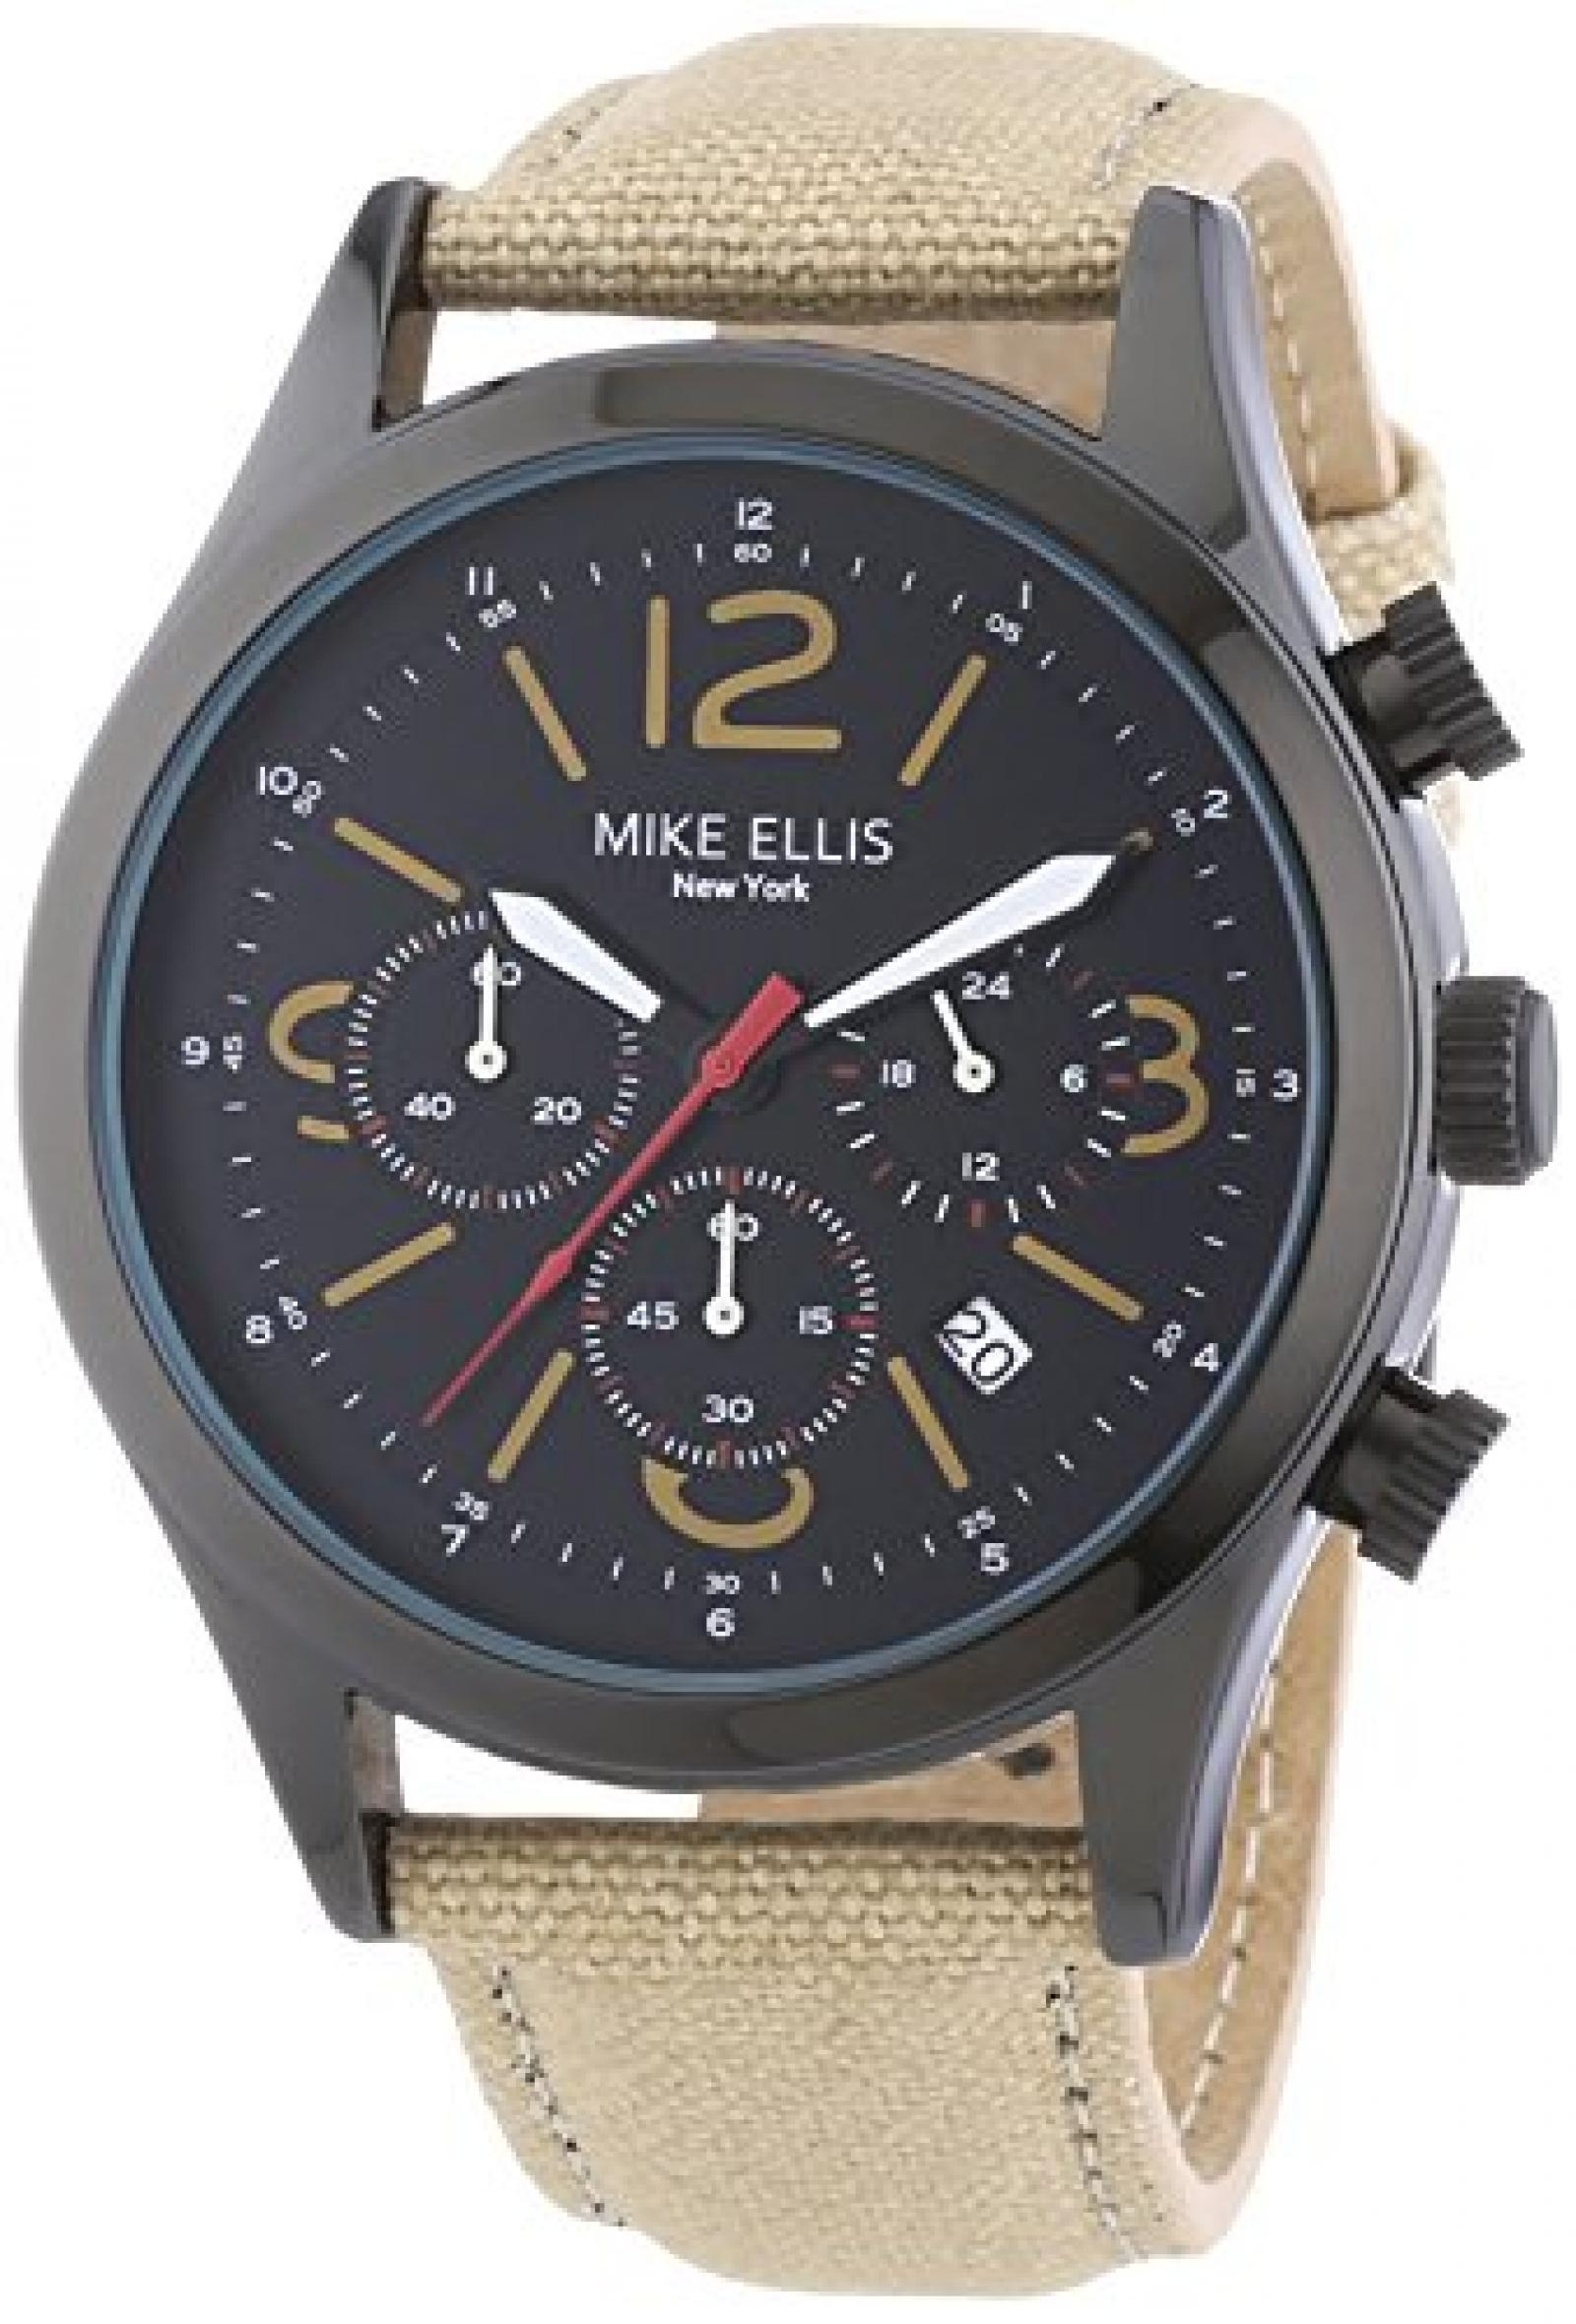 Mike Ellis New York Herren-Armbanduhr XL Desert Fox Chronograph Quarz Textil M2439B